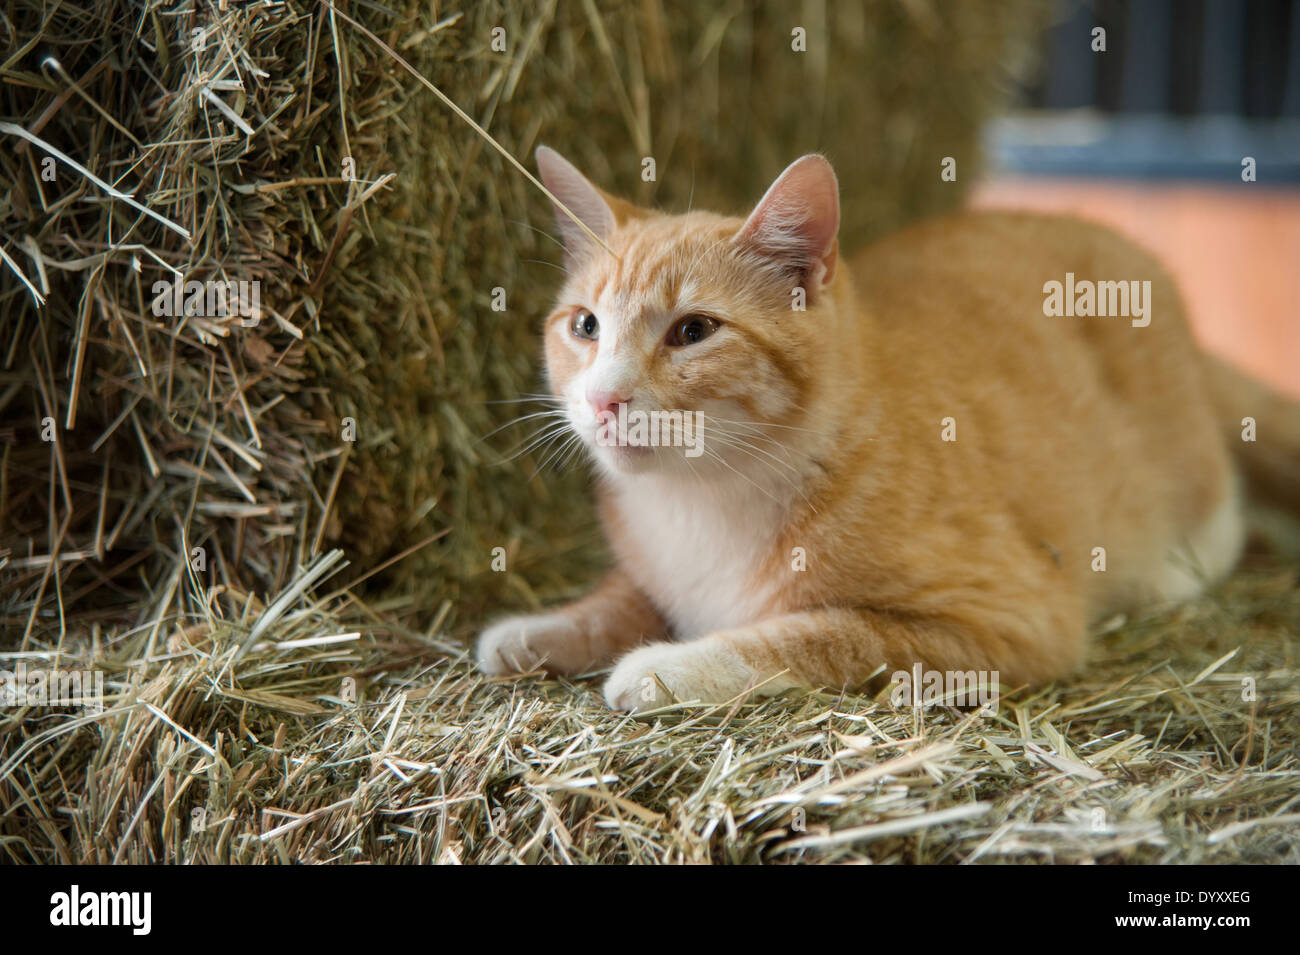 Cat lying on bail of straw - Stock Image